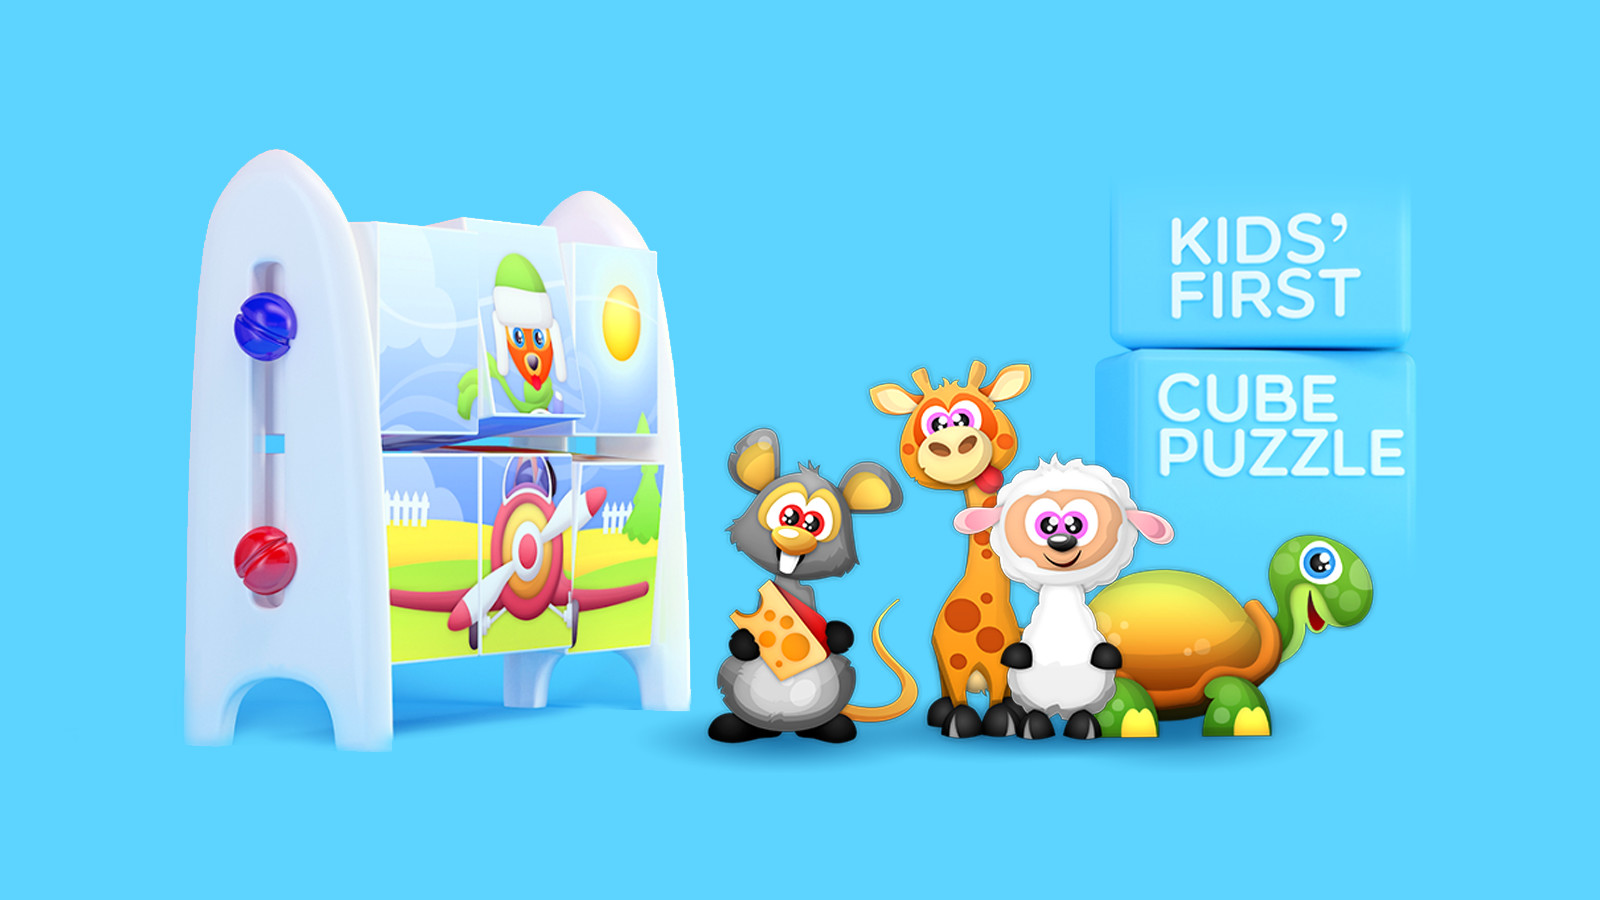 Play Video - Kids' First Cube Puzzle